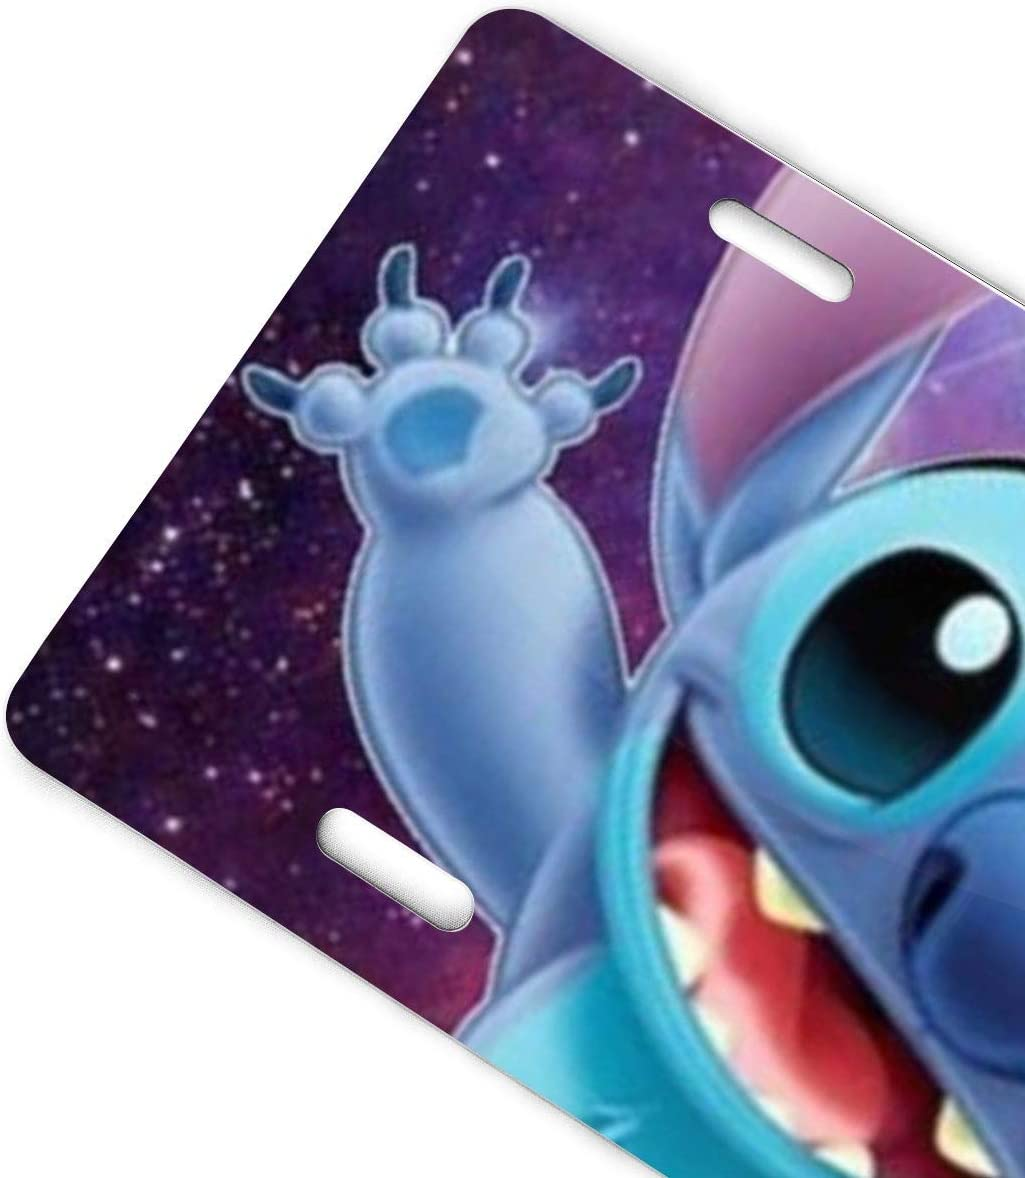 Stitch Ice Cream License Plate Sign Tag Car Accessories 12 X 6 in